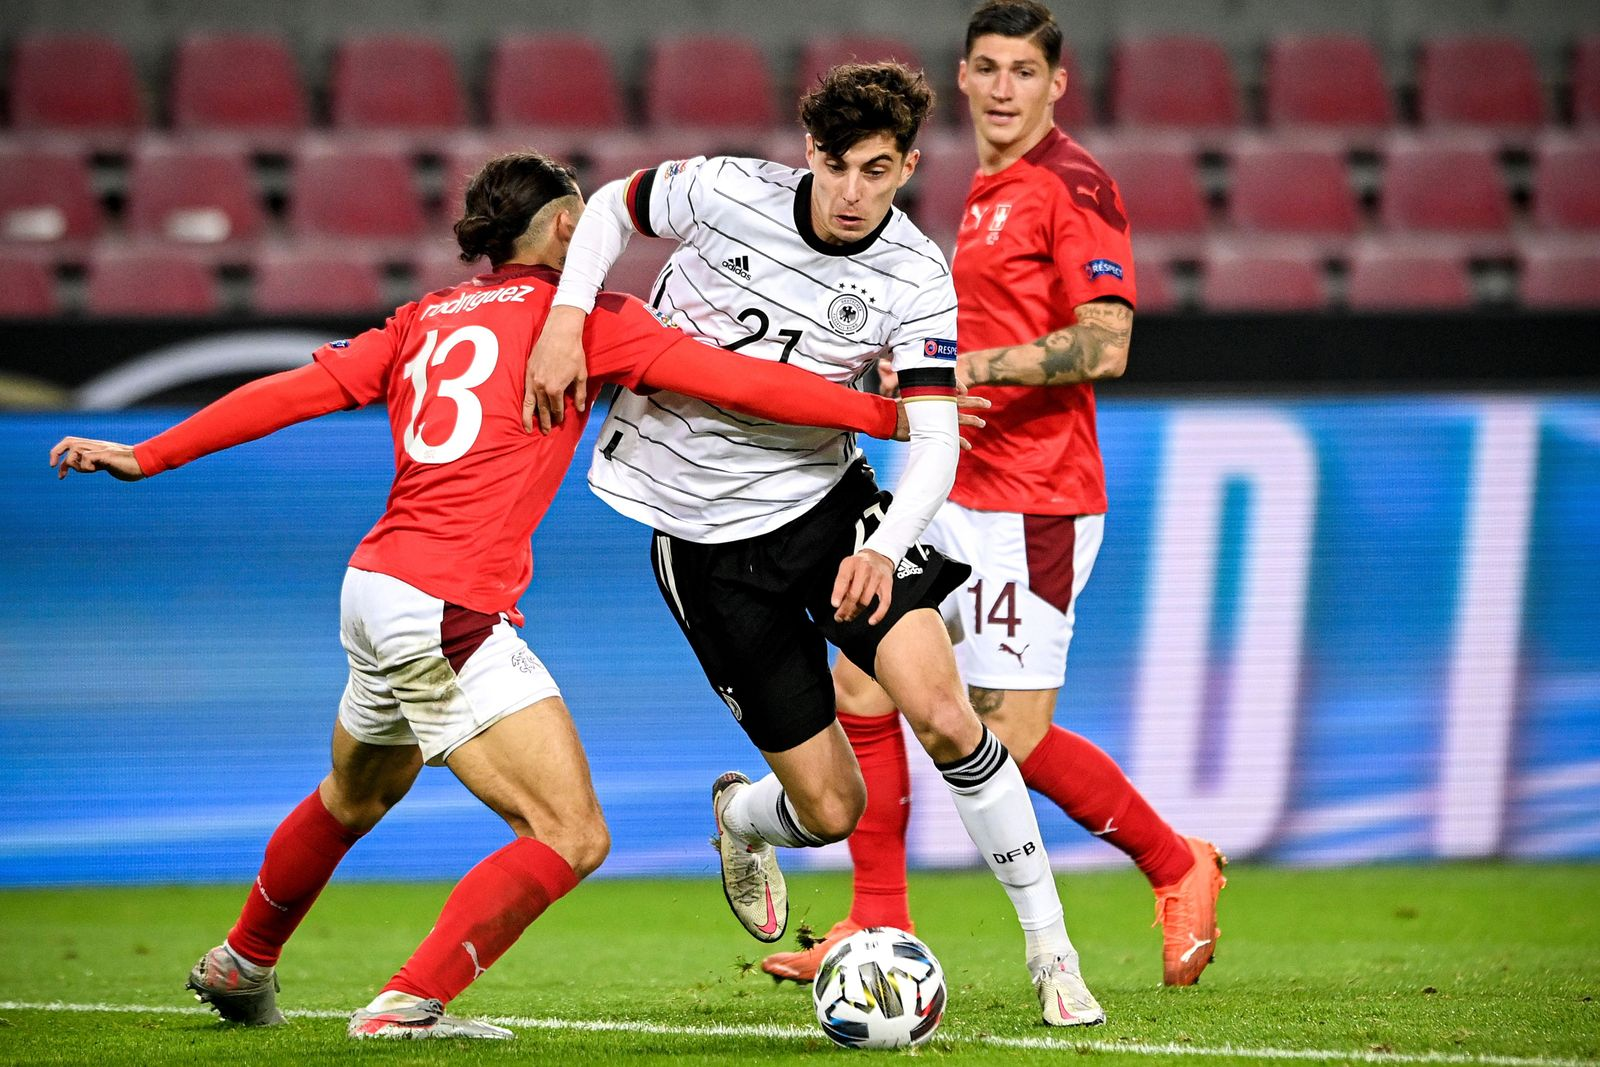 Germany vs Switzerland, Cologne - 13 Oct 2020